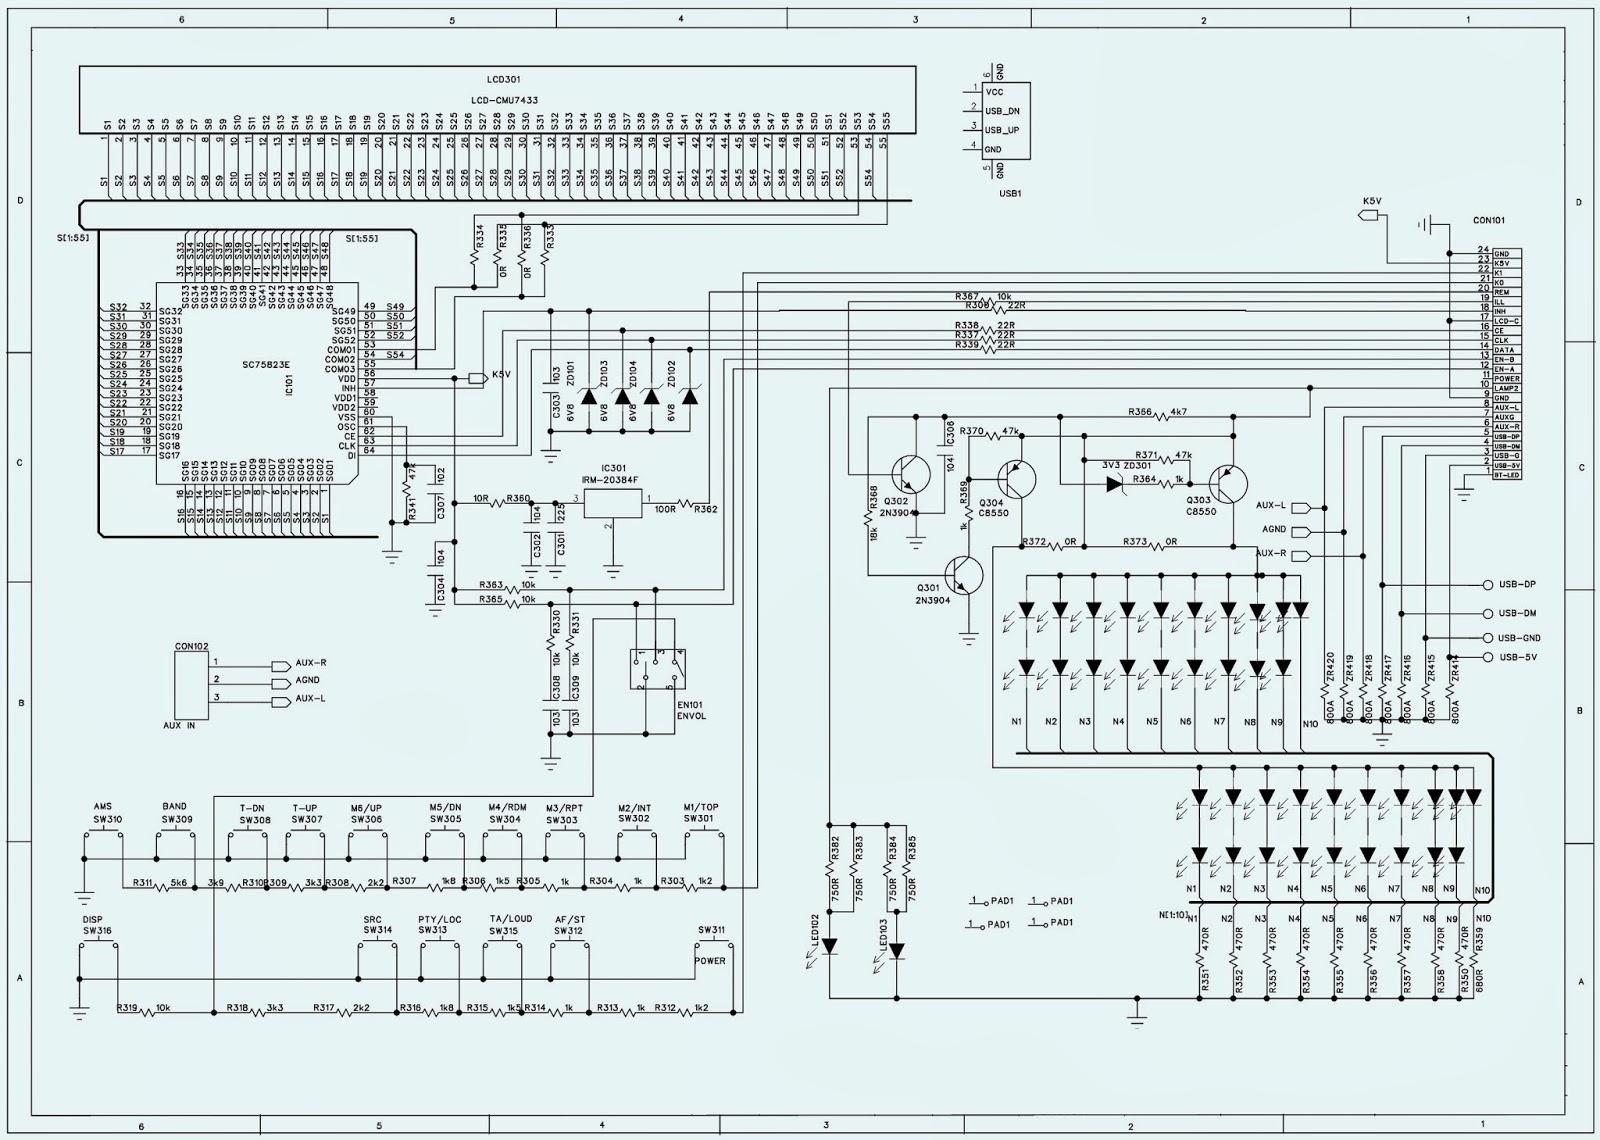 X465 John Deere Wiring Diagram Real X585 25x4 Sony Xplod Get Free Image About 465 Mower